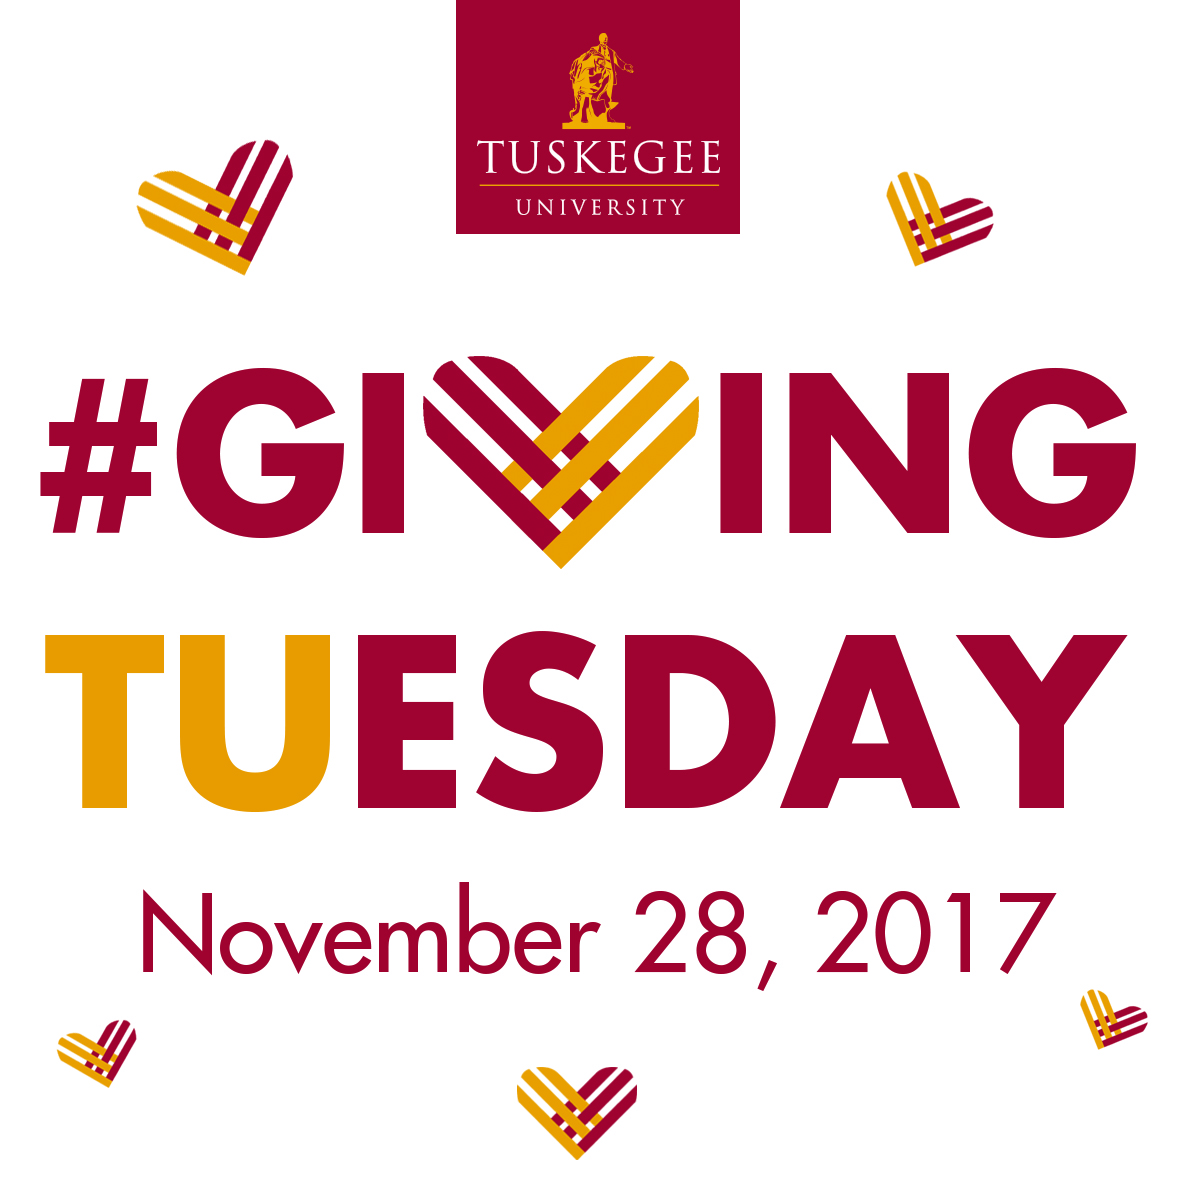 Giving Tuesday - November 28, 2017